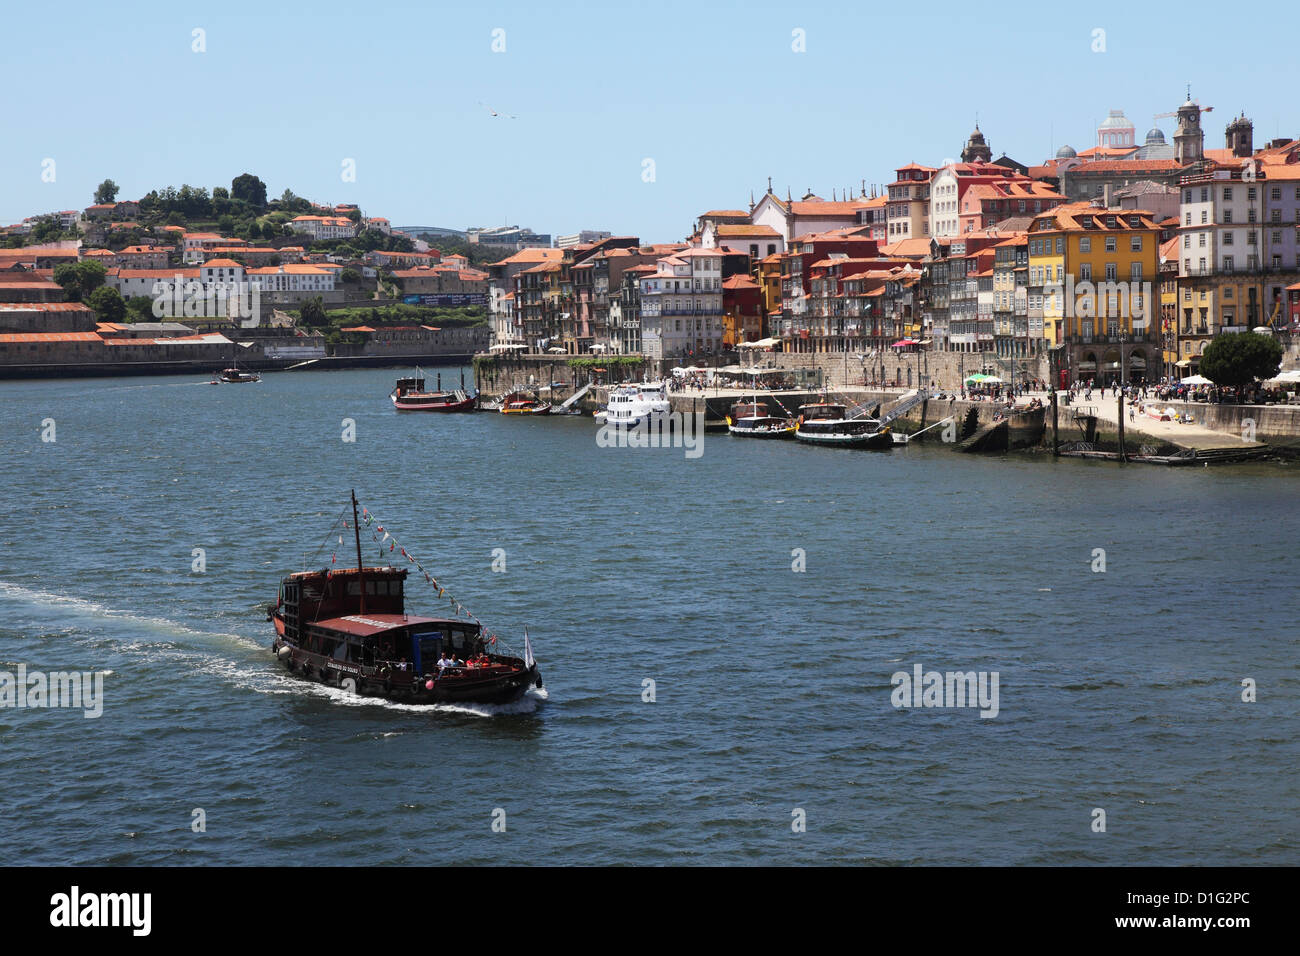 A boat cruises on the River Douro, past the Ribeira District, UNESCO World Heritage Site, Porto, Douro, Portugal, Stock Photo